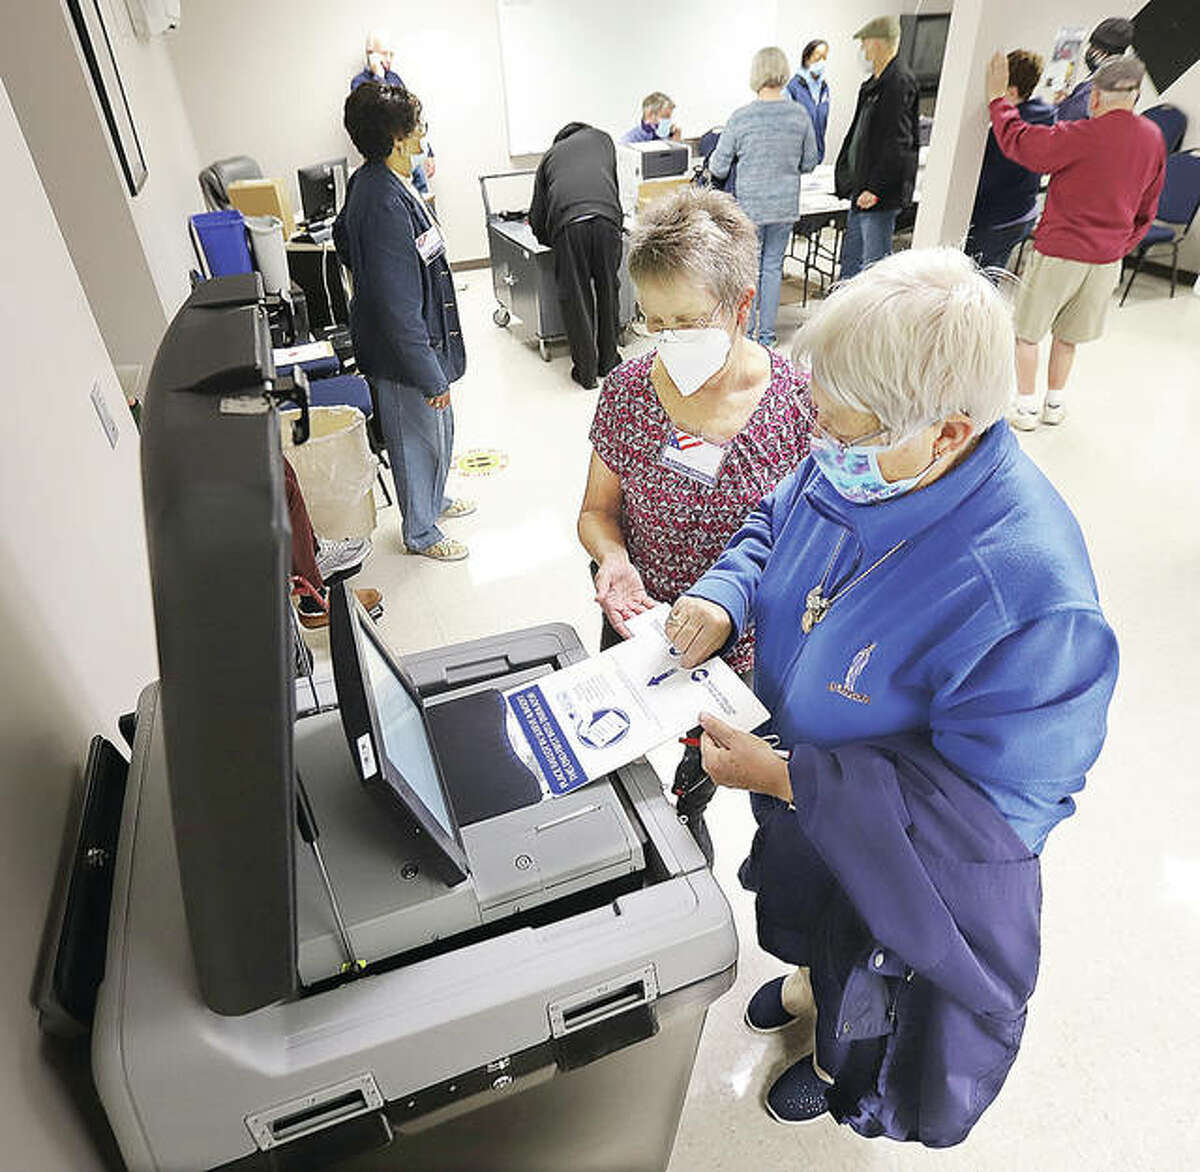 Madison County Election Judge Sharon Cox, working at the Alton early voting site inside the Scott Bibbs Center, helps a voter cast her ballot into the tabulation maching Monday on the first day of expanded voting.